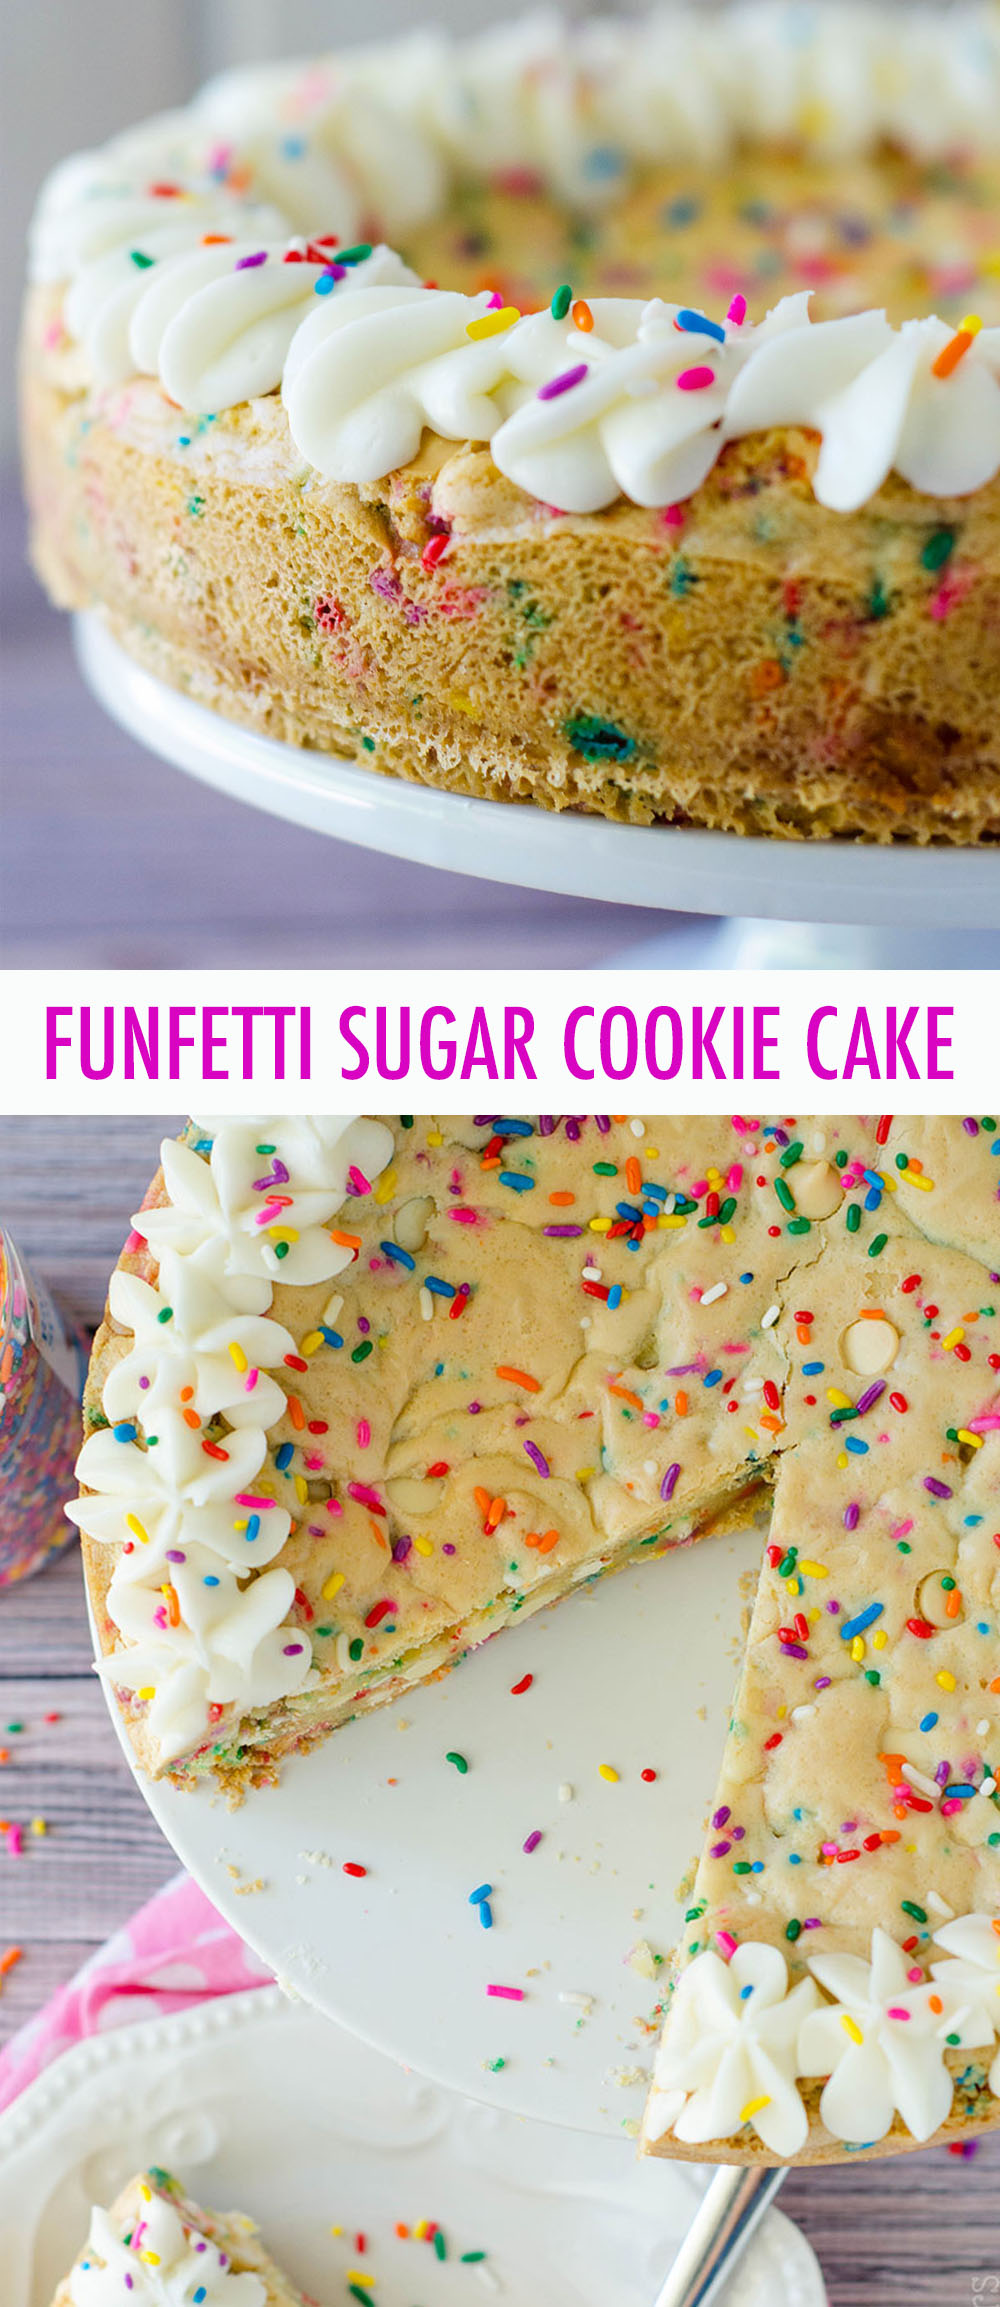 Soft and buttery in the center, crunchy around the edges, and filled with plenty of white chocolate chips and sprinkles to celebrate any occasion. Topped with a creamy and buttery almond vanilla buttercream.